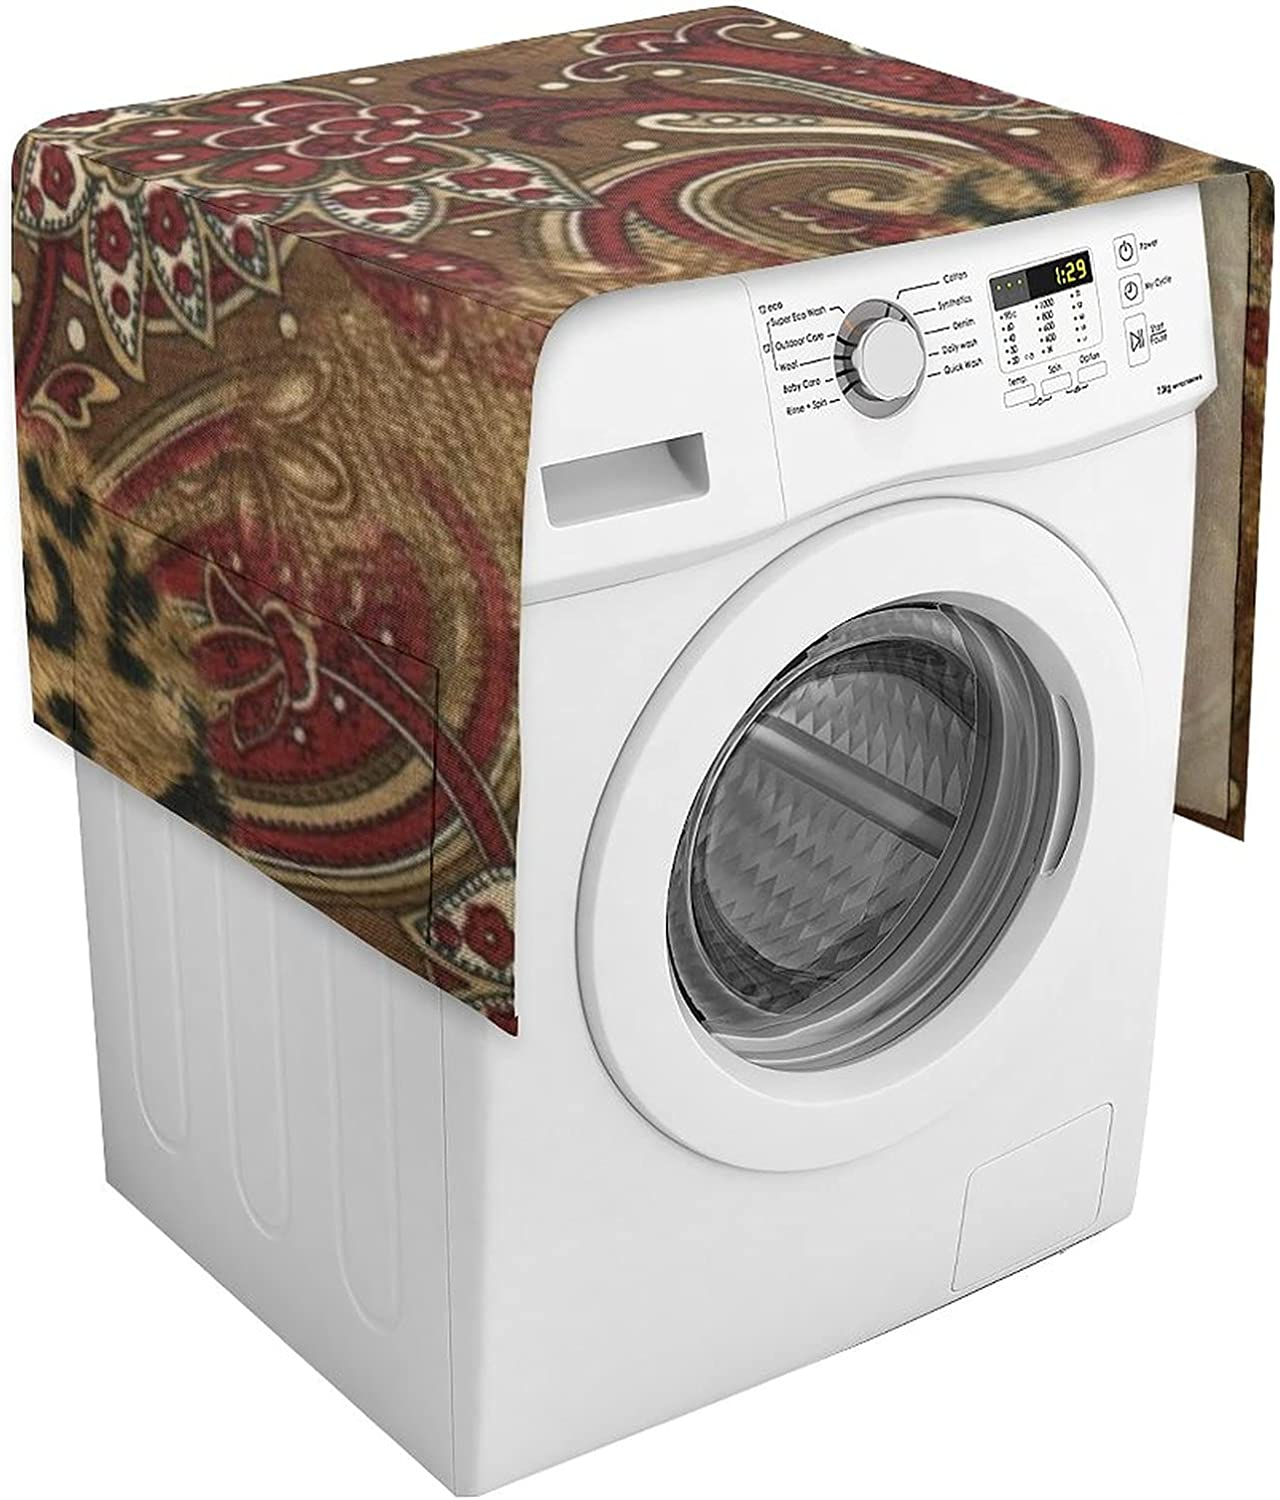 Multi-Purpose Washing Machine Covers Washer Finally resale start Appliance Popular overseas Protector